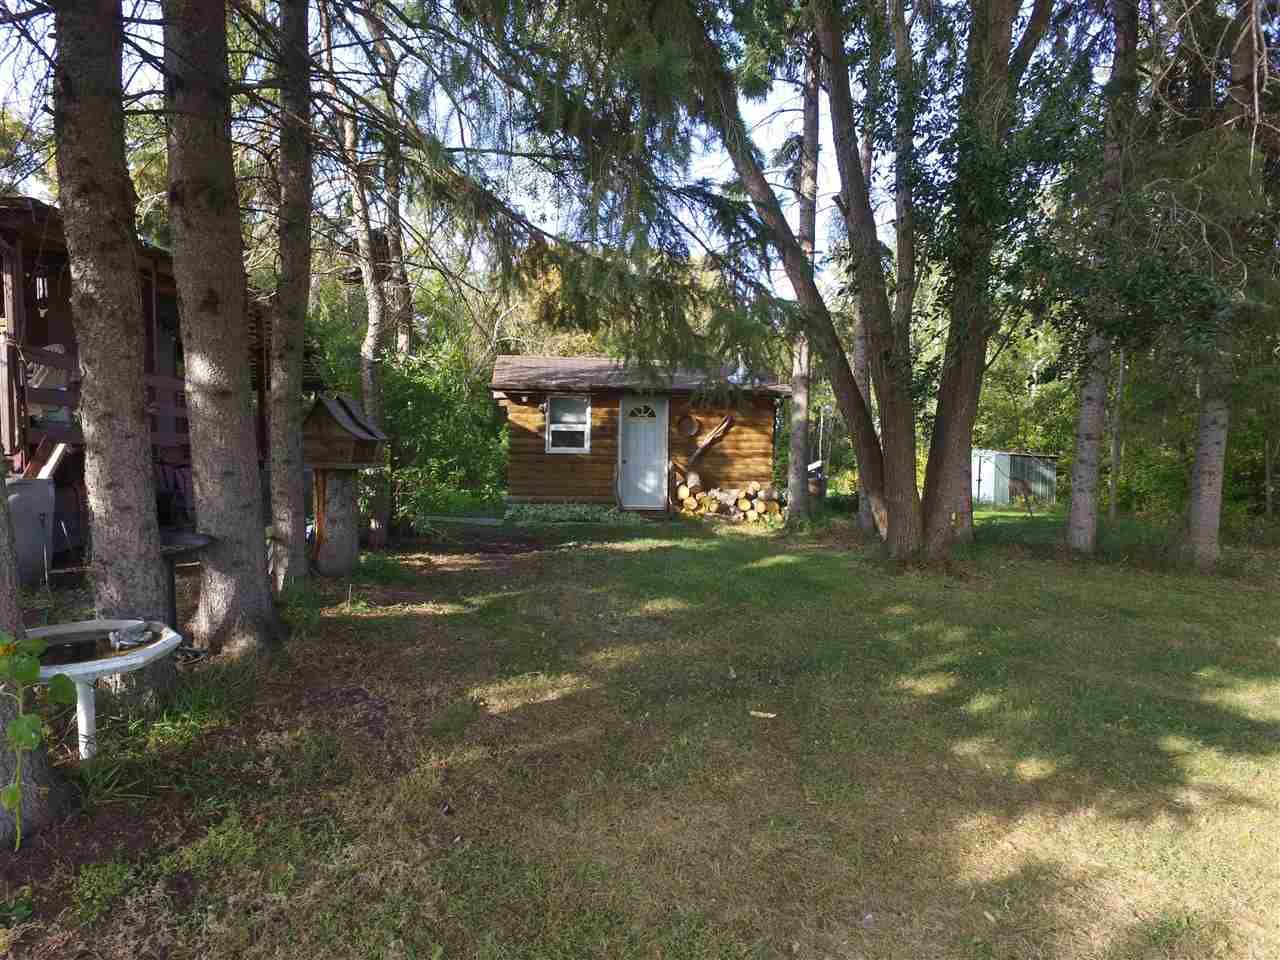 Photo 8: Photos: 472050A Hwy 814: Rural Wetaskiwin County House for sale : MLS®# E4213442